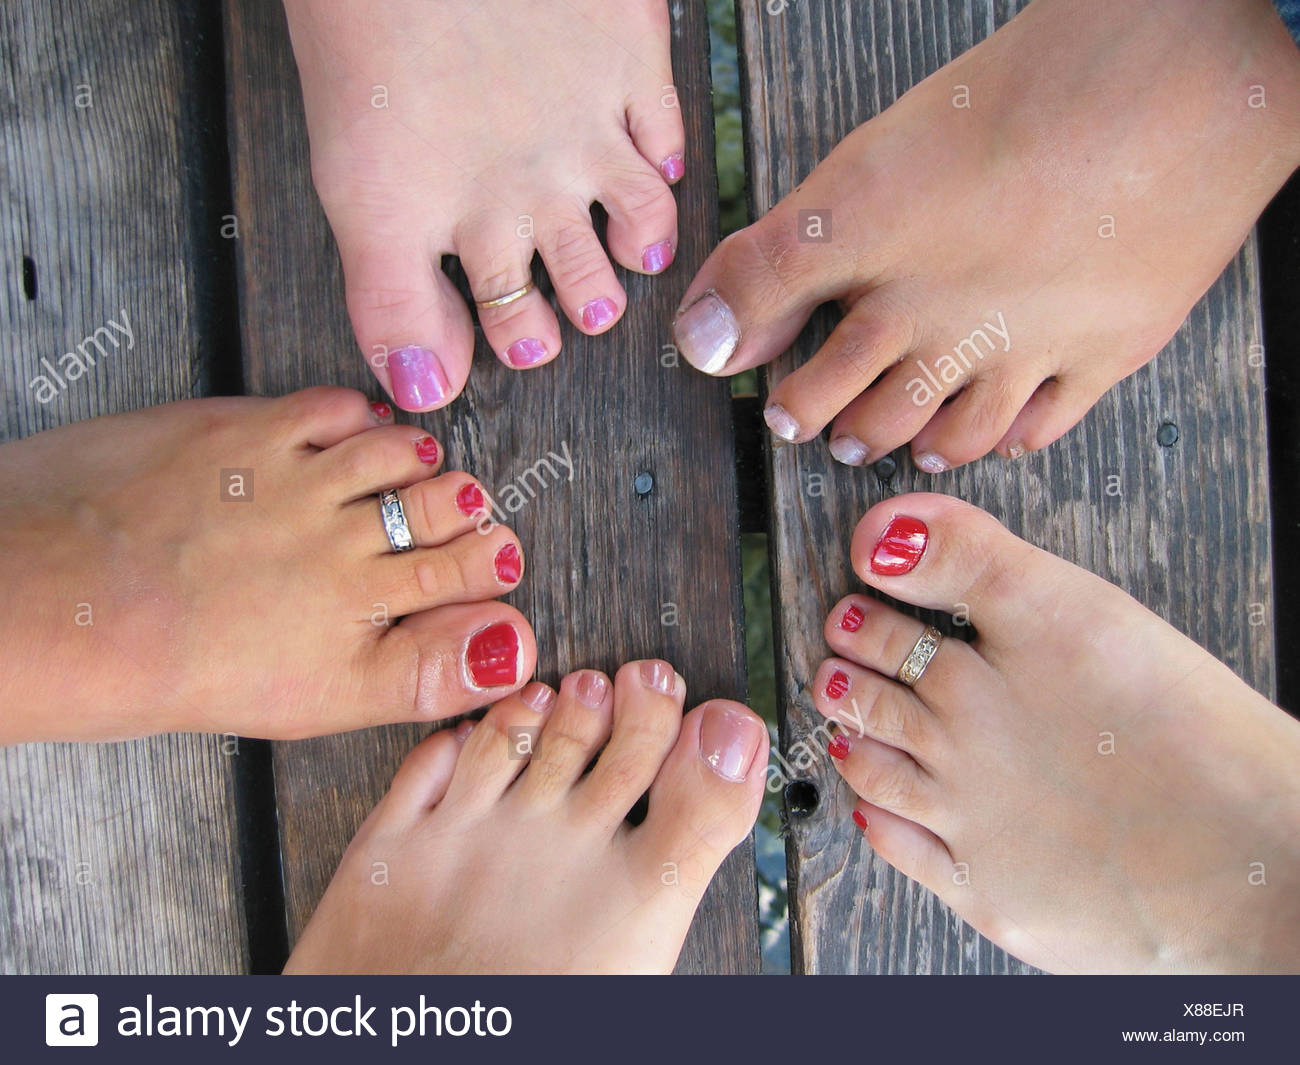 Swell Womens Feet With Painted Toenails On Old Wood Dock Stock Unemploymentrelief Wooden Chair Designs For Living Room Unemploymentrelieforg